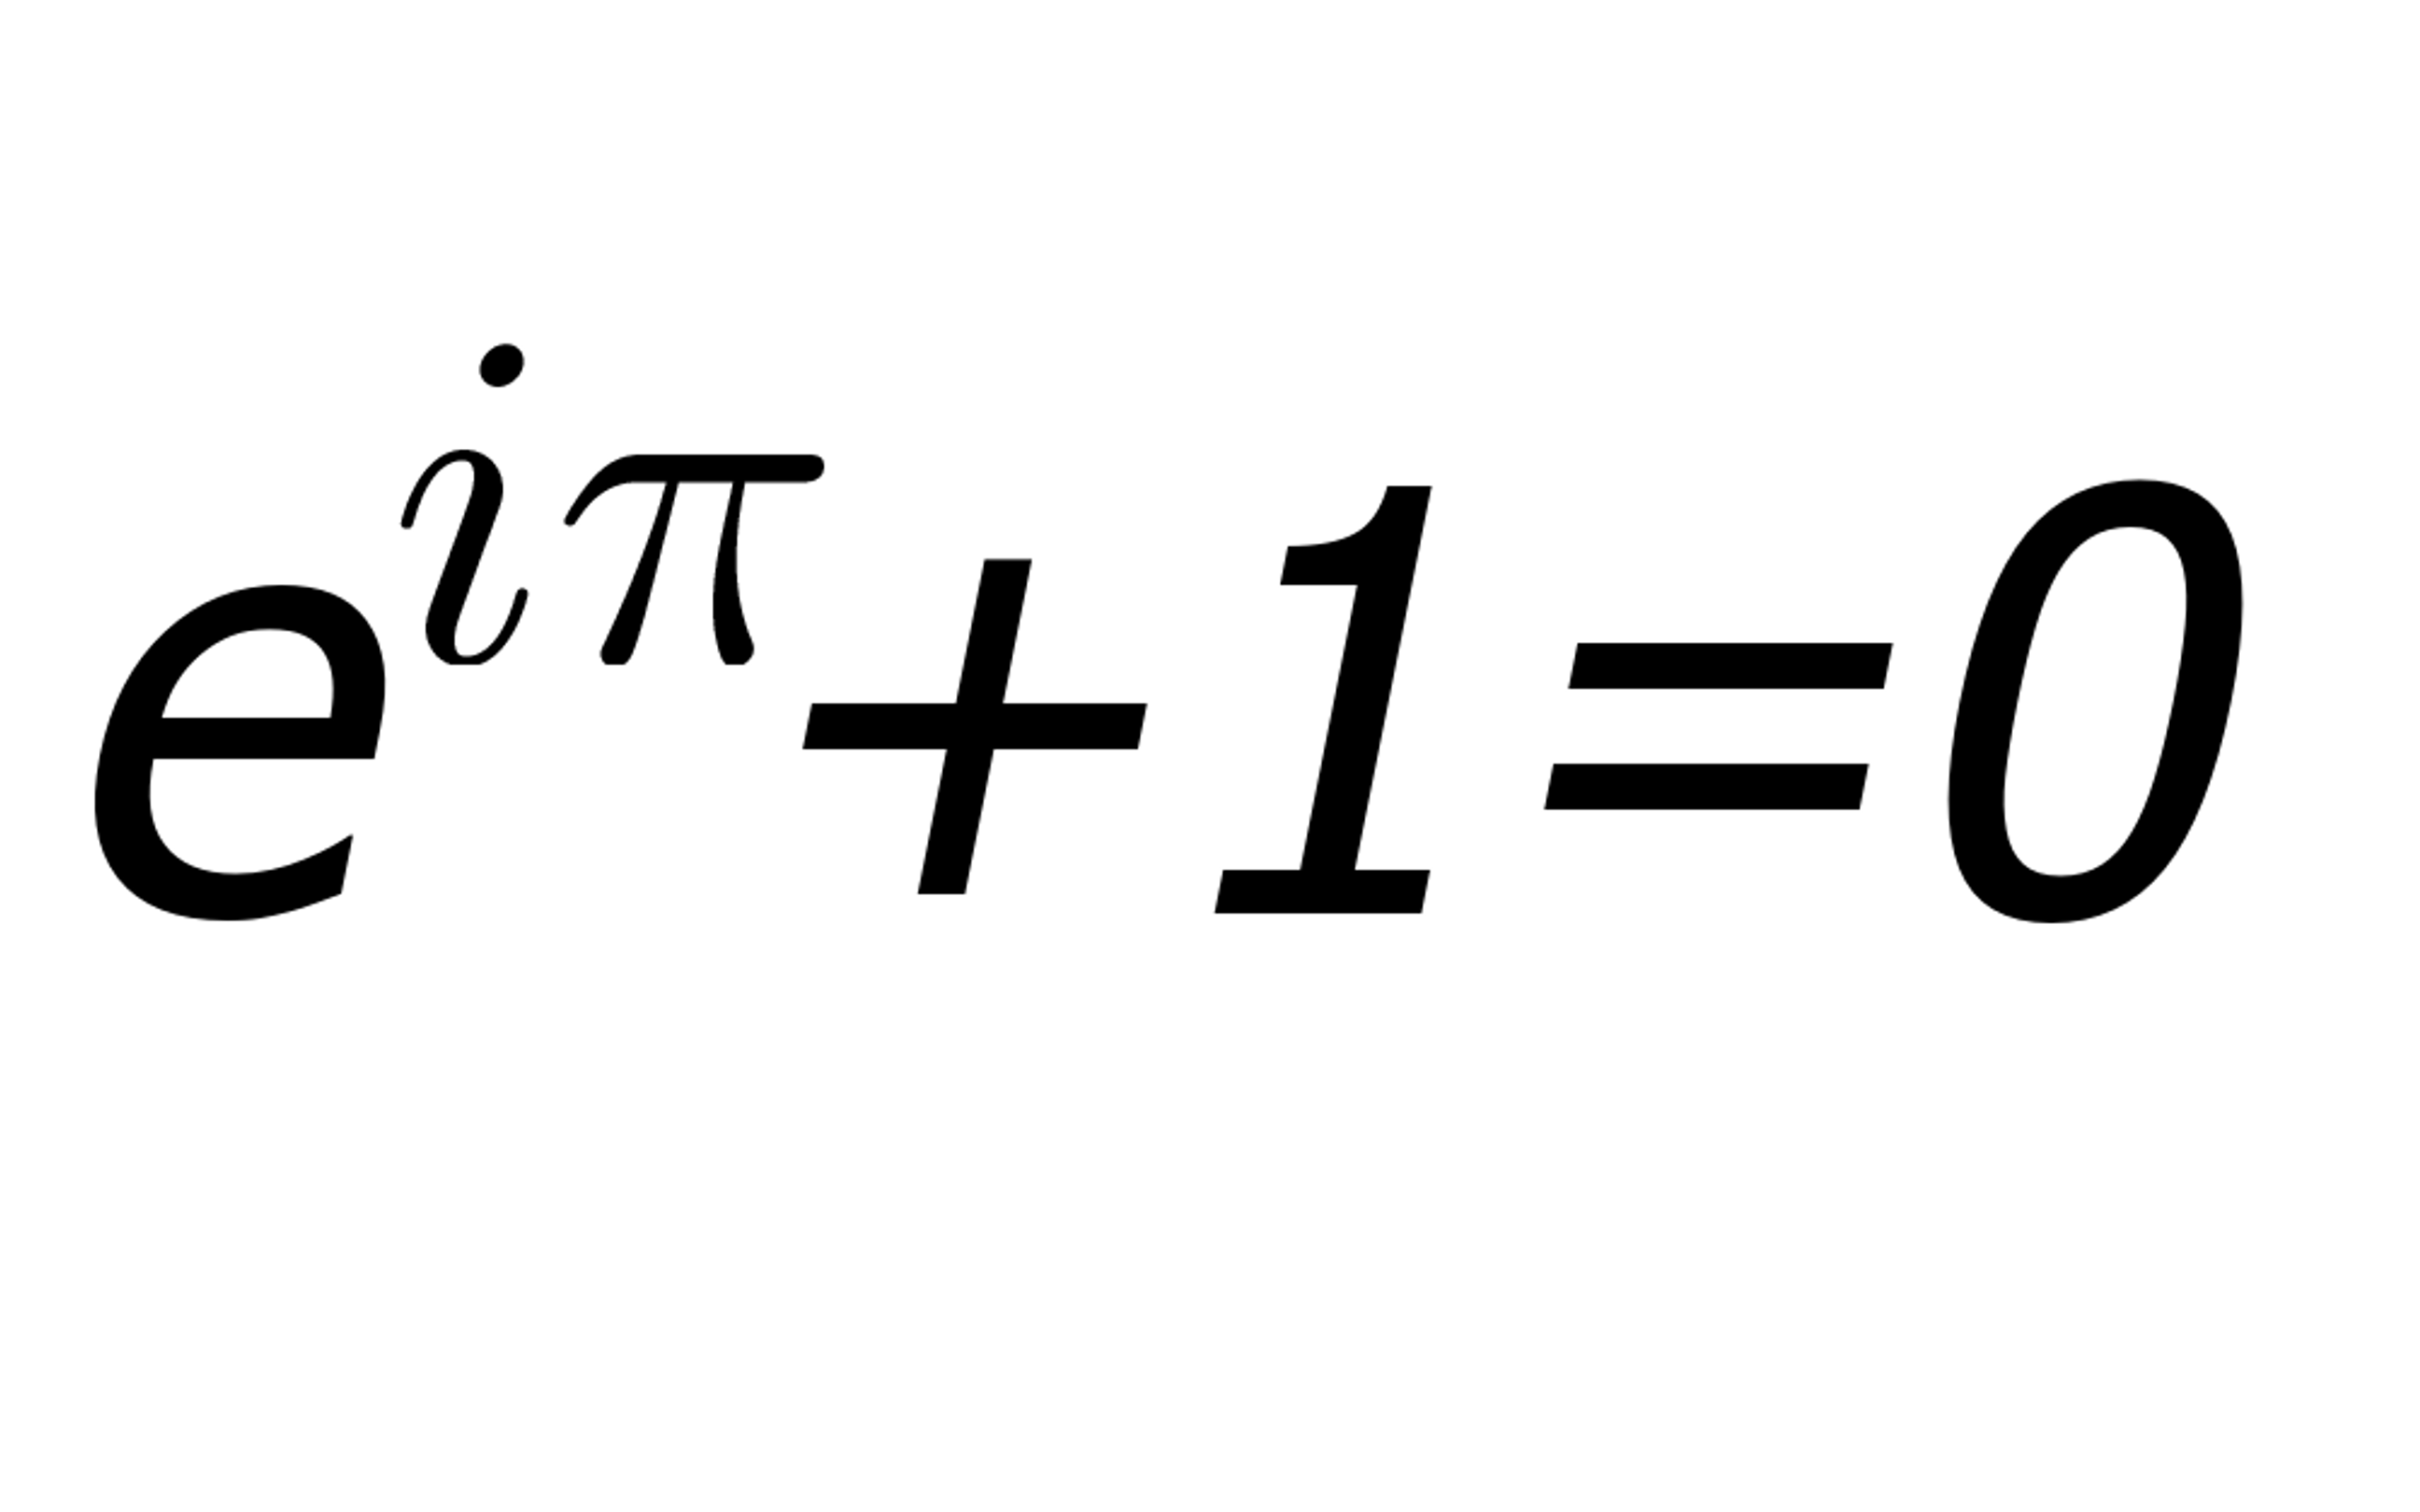 The most beautiful math equations, according to the